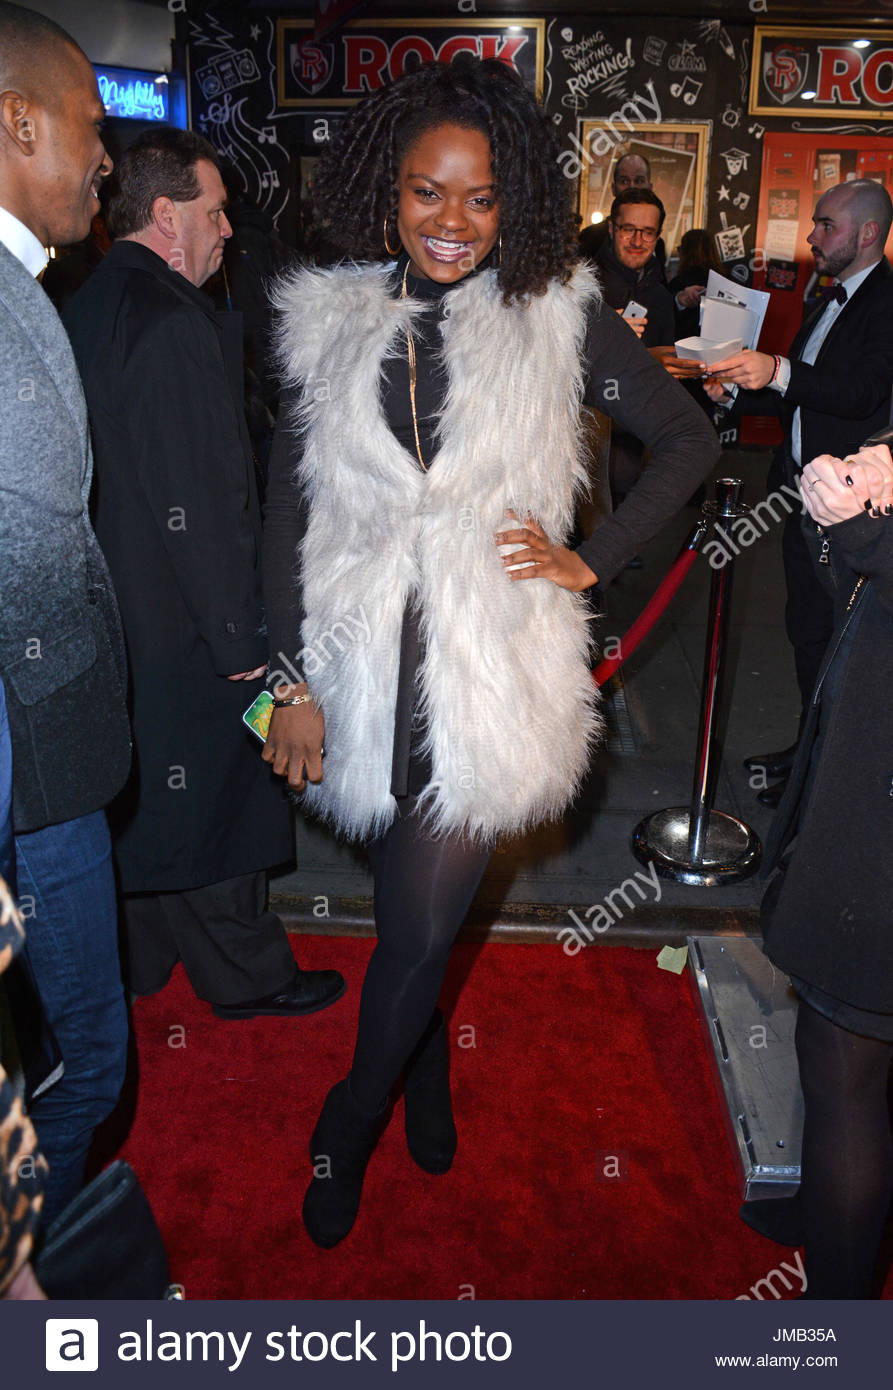 shanice williams of rock opening night on broadway at the